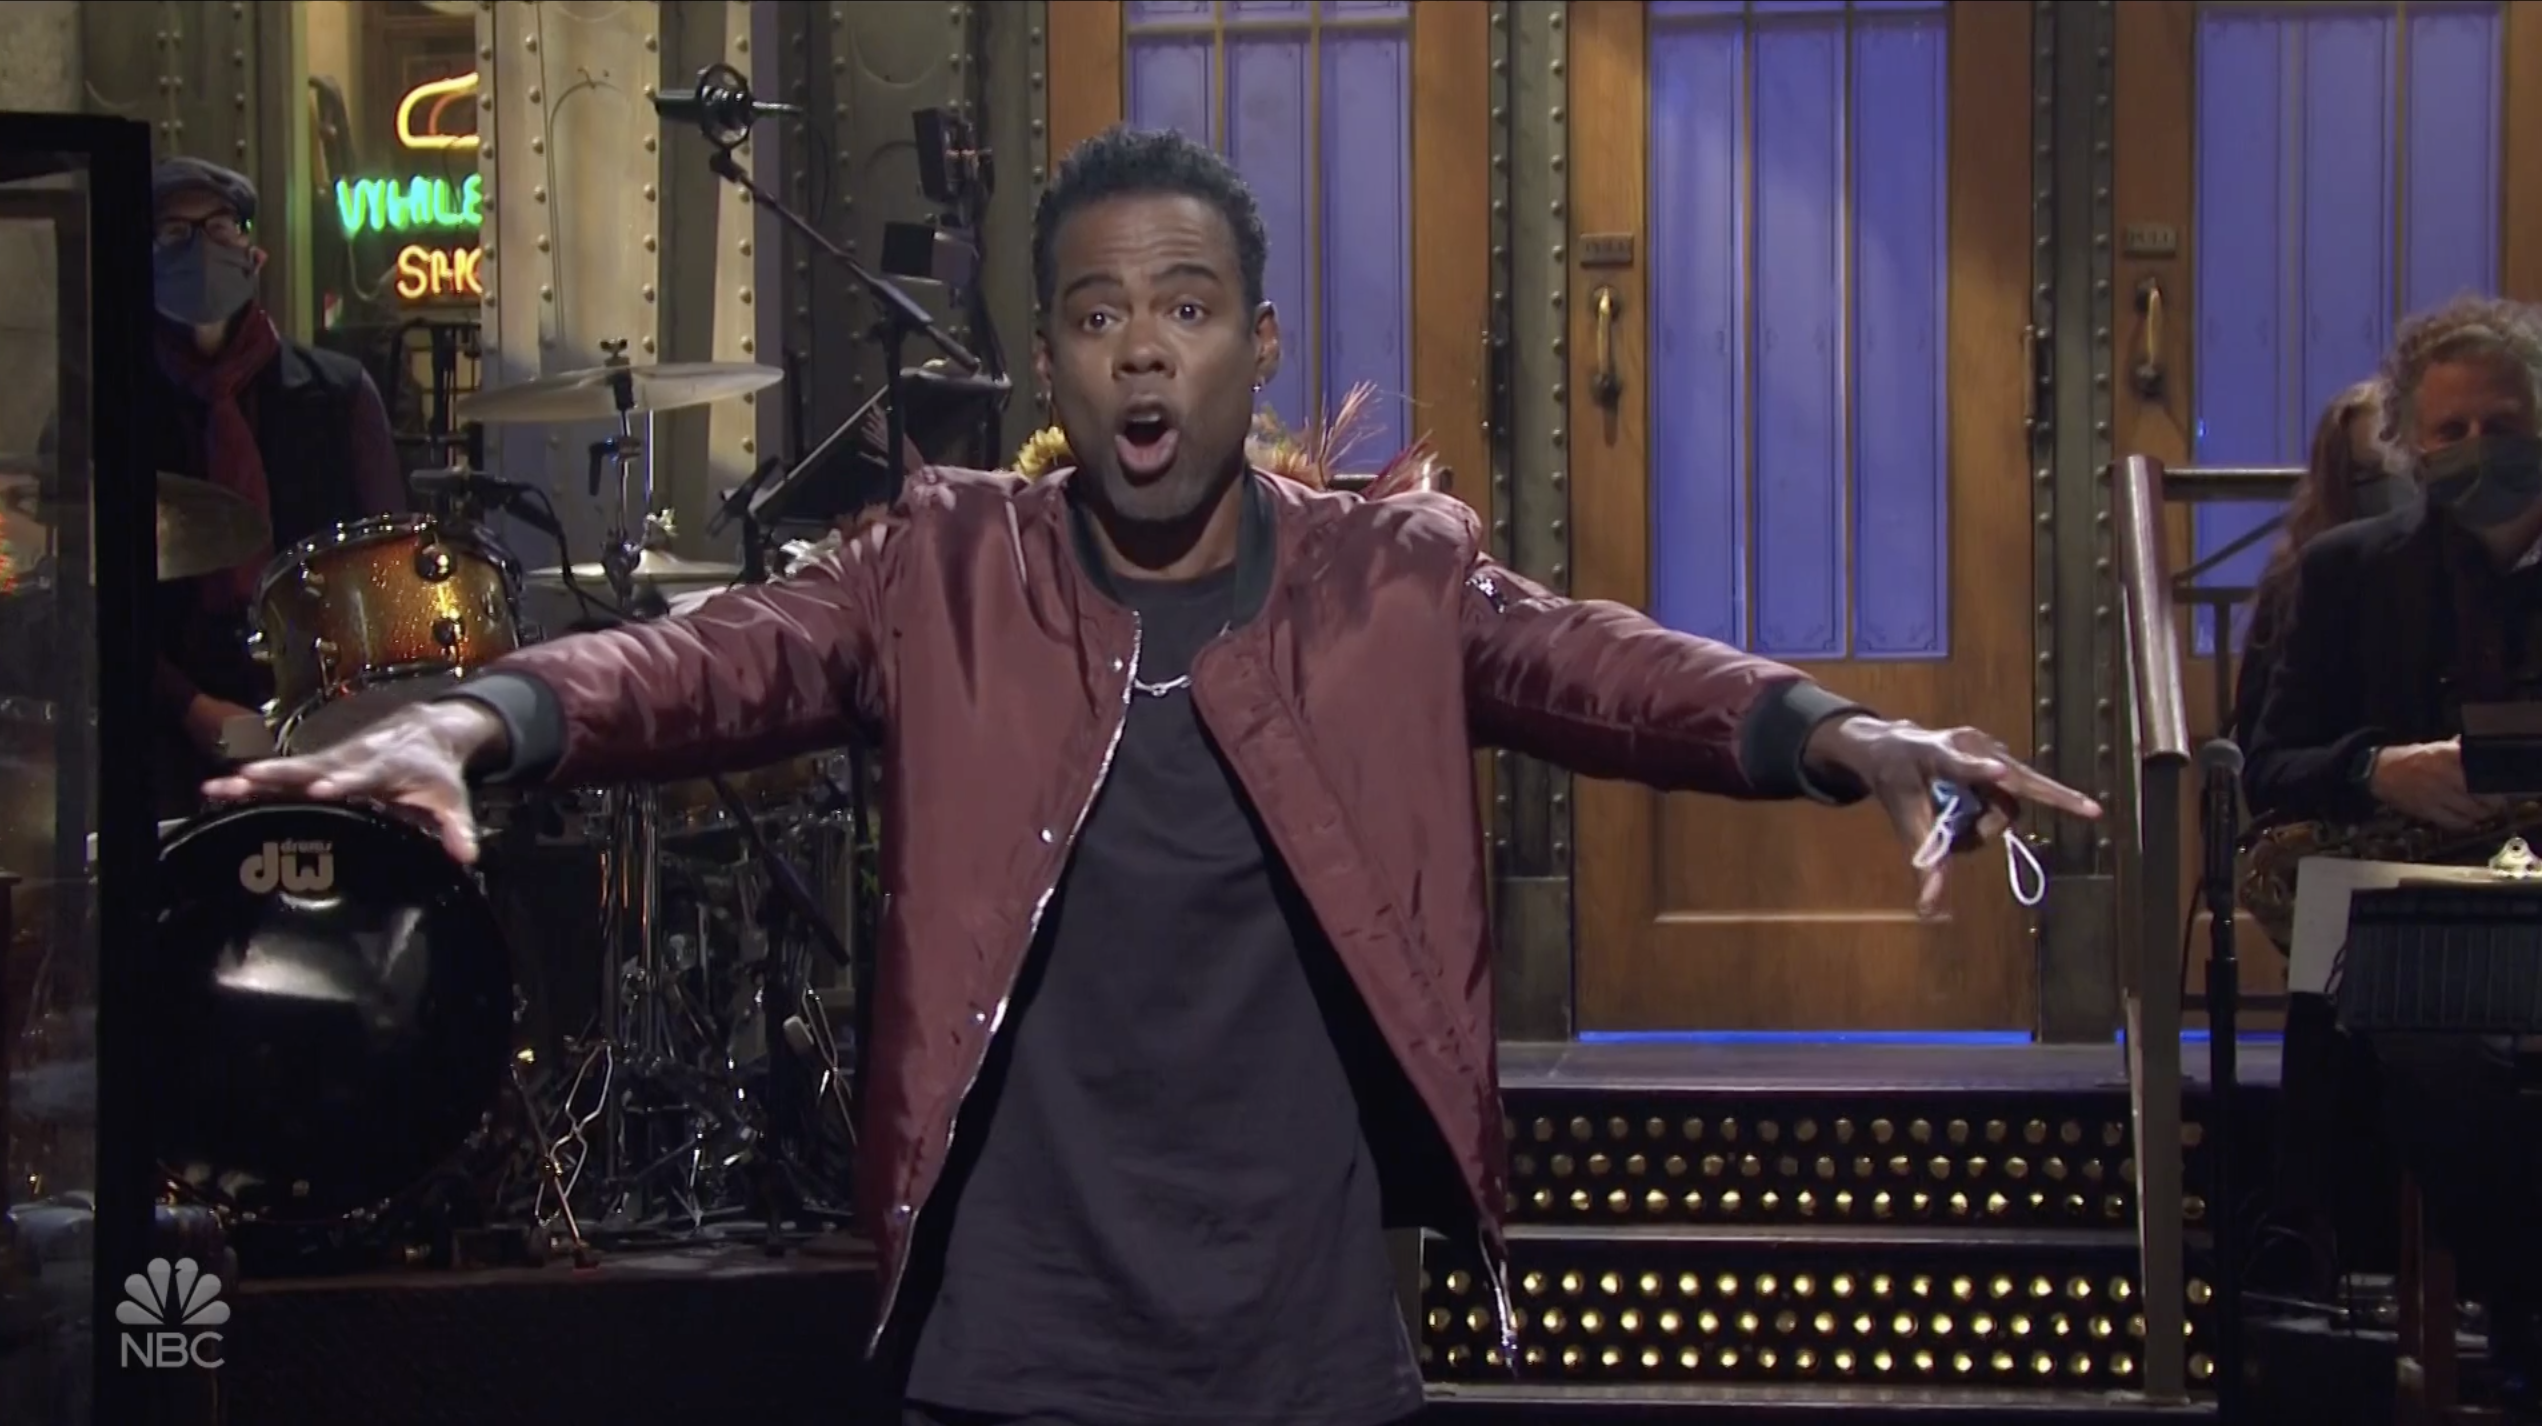 Chris Rock hosts SNL